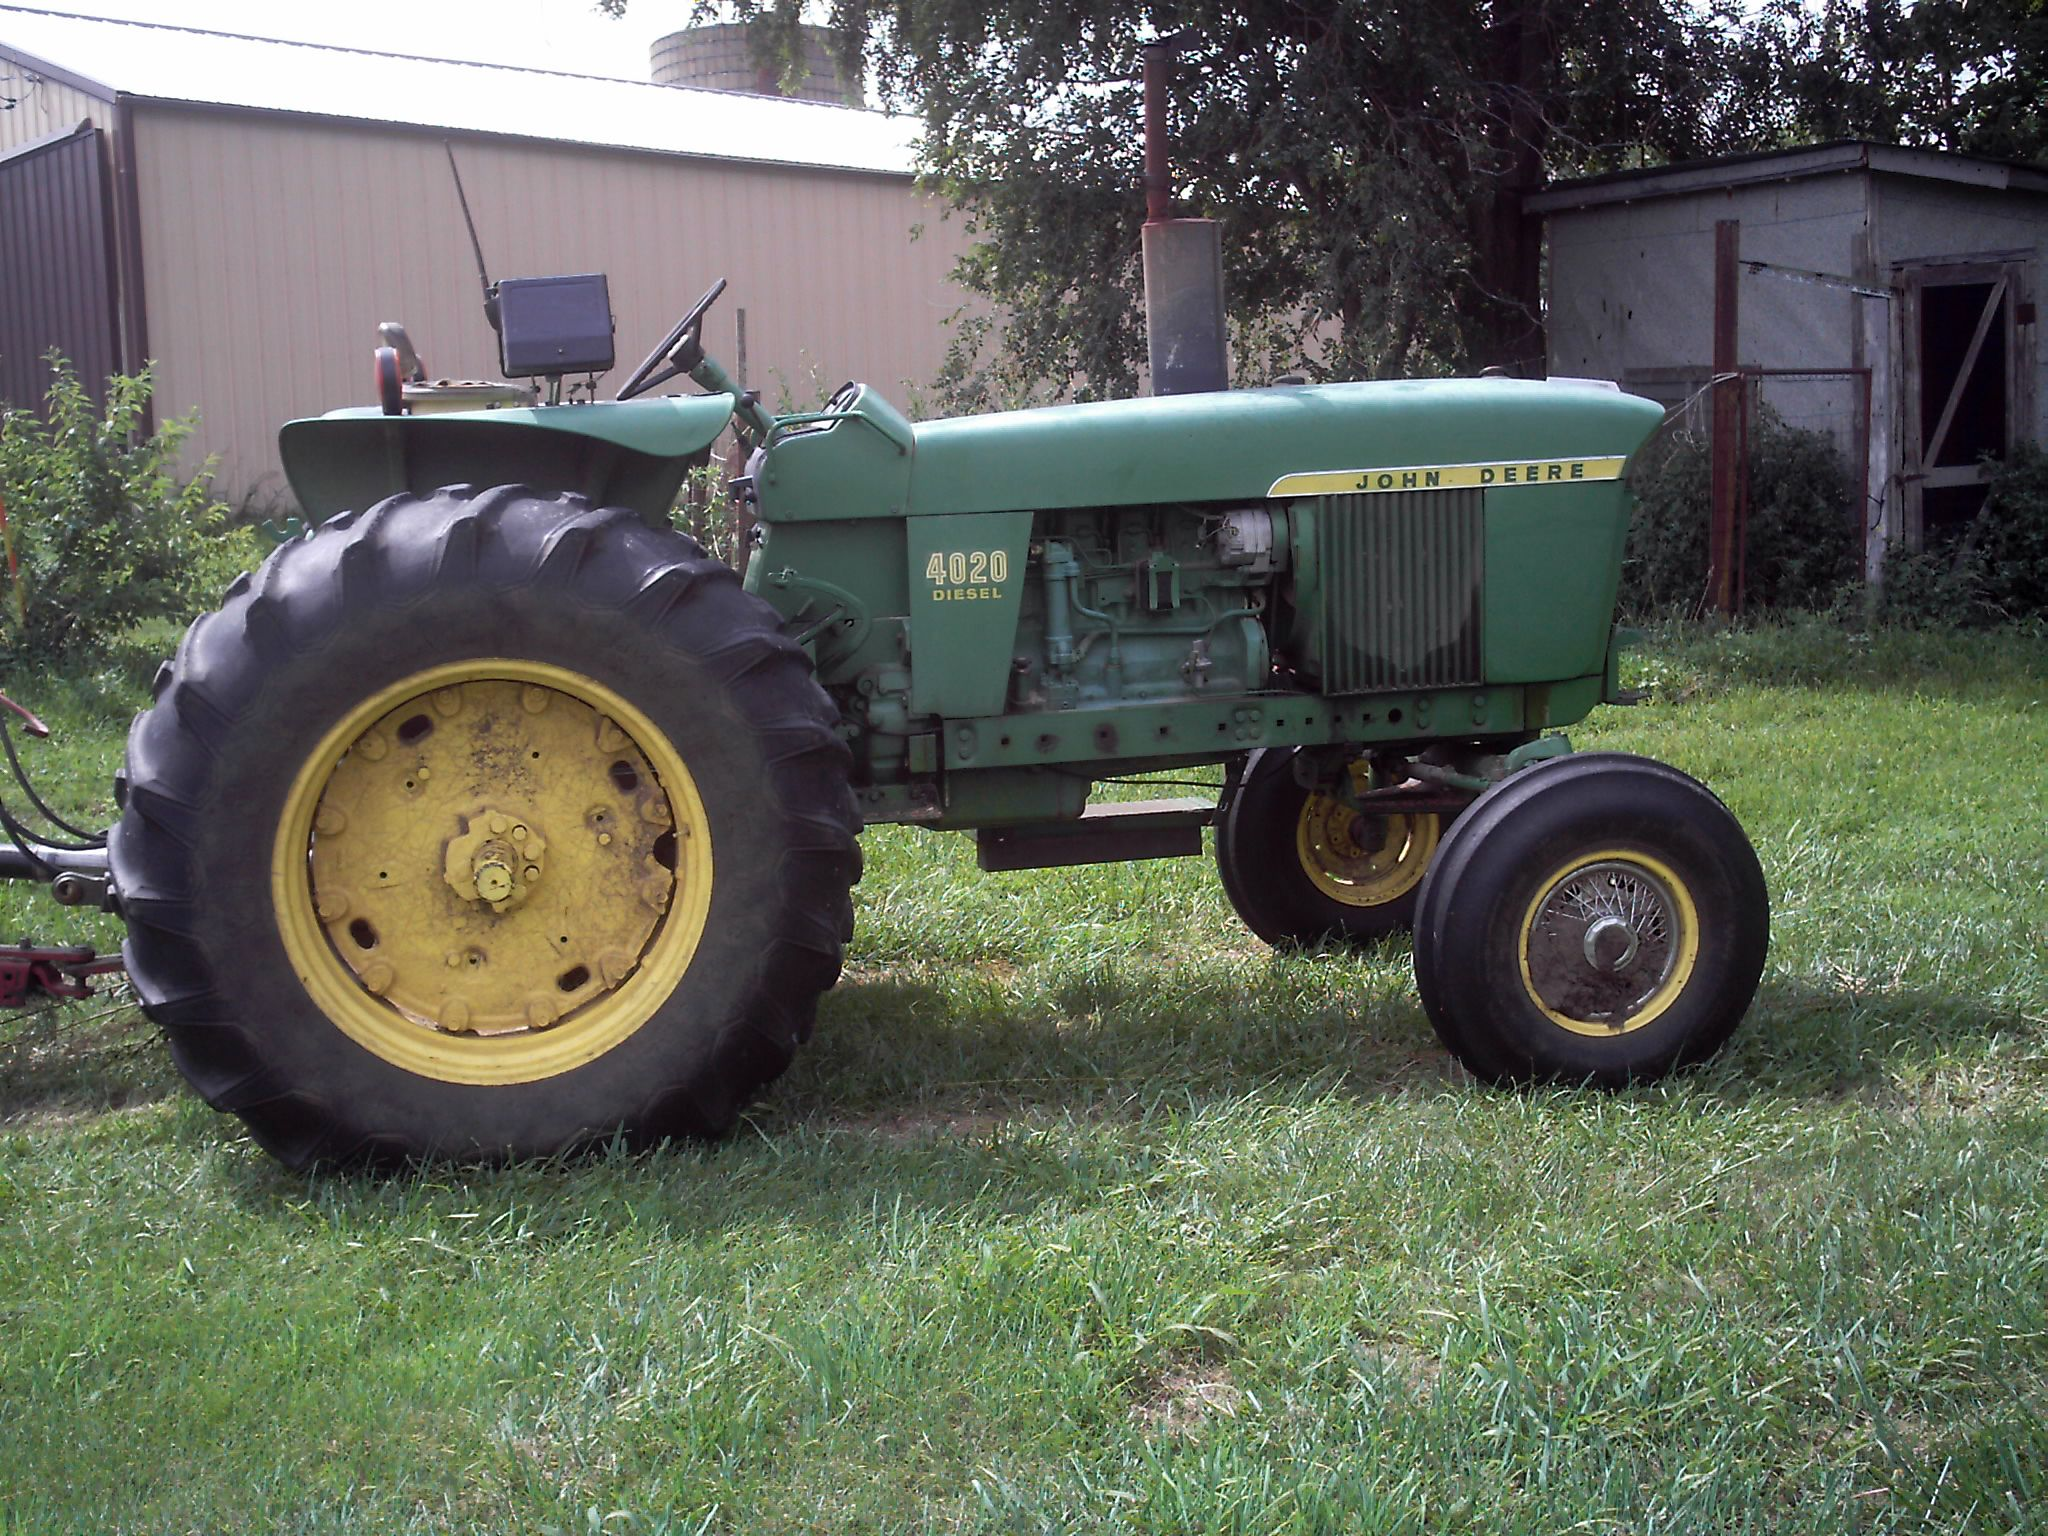 John Deere Wikipedia >> Pin On John Deere Equipment